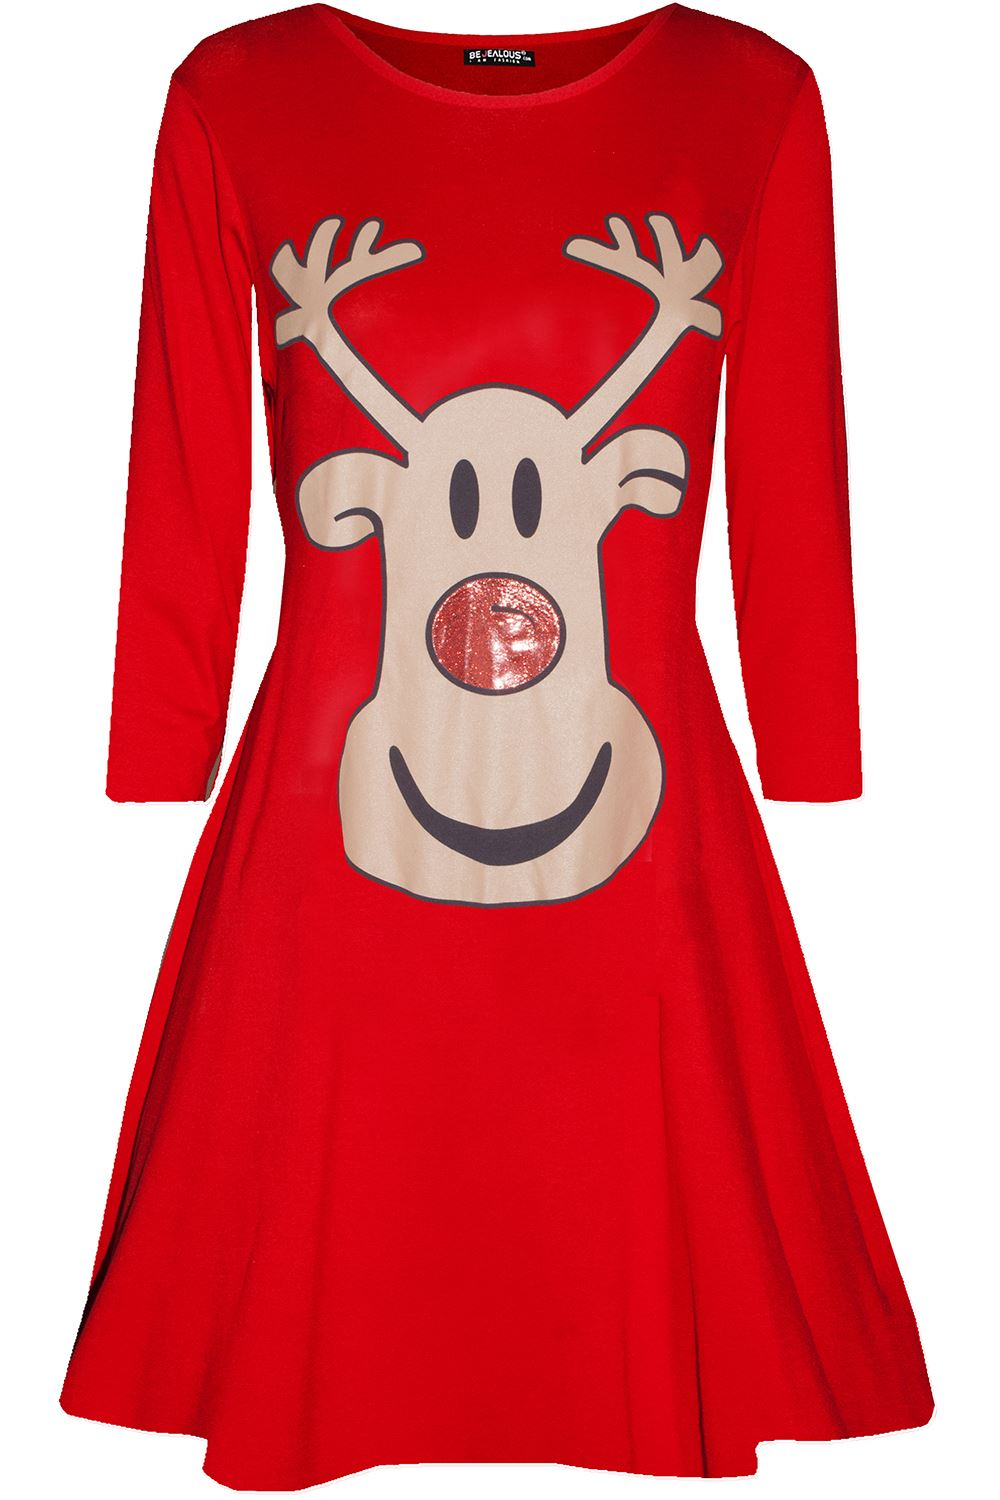 Womens-Ladies-Kids-Girls-Christmas-Xmas-Santa-Reindeer-Flared-Swing-Mini-Dress thumbnail 27